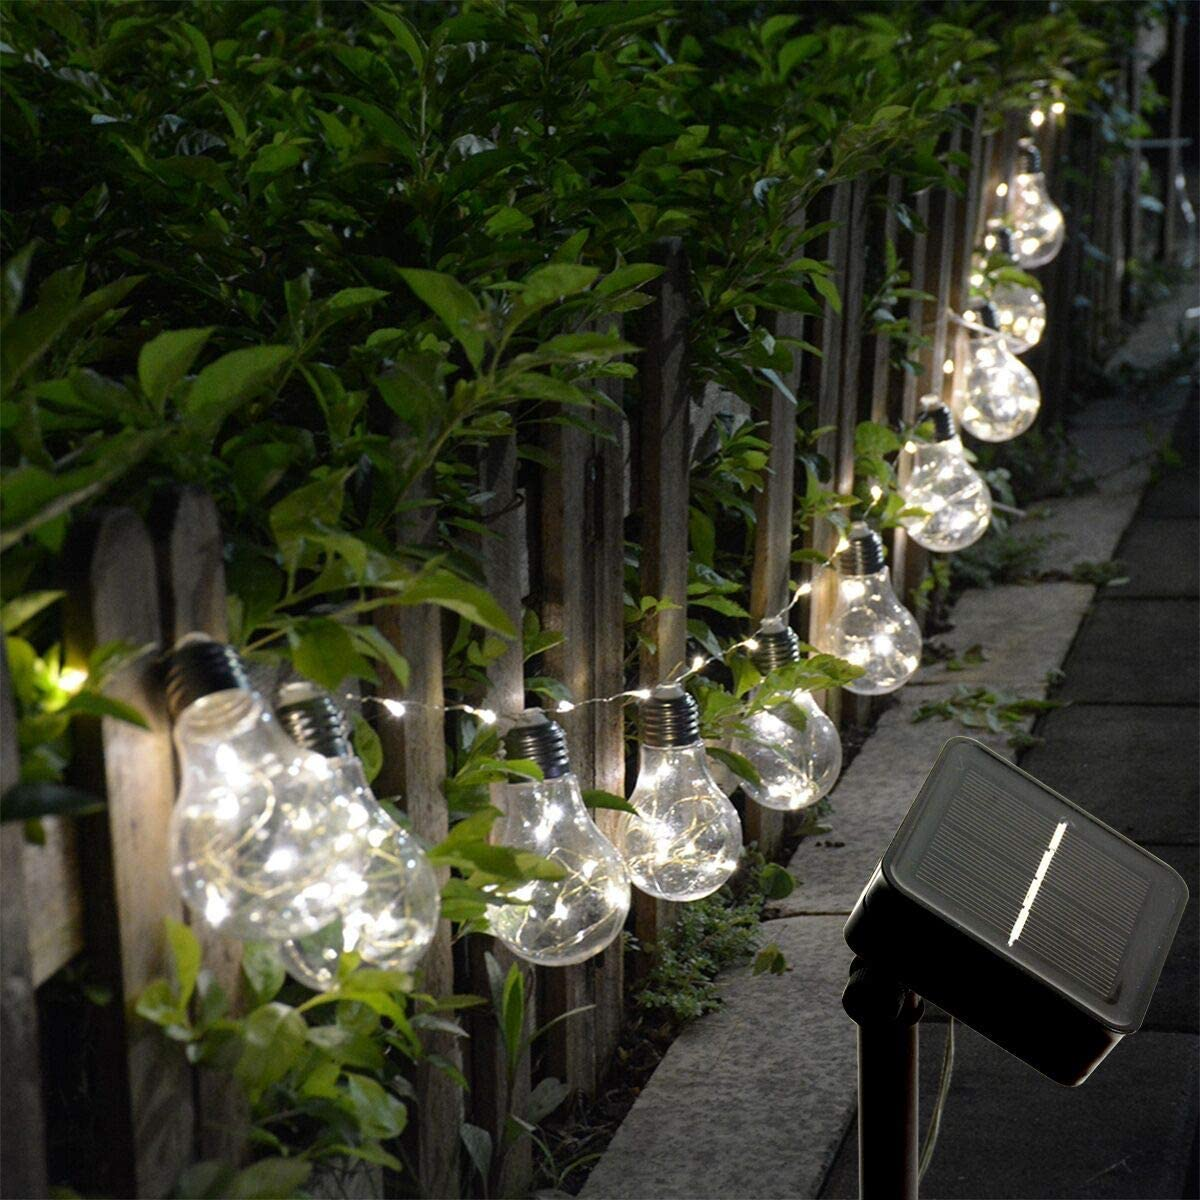 Homeleo Solar Hanging Lights, Outdoor Clear Bulb String Lights, Solar-Powered Patio Globe Fairy Lights for Garden Umbrella Gazebo Christmas Balcony Wedding Party Decor 100leds,10bulbs,Warm White